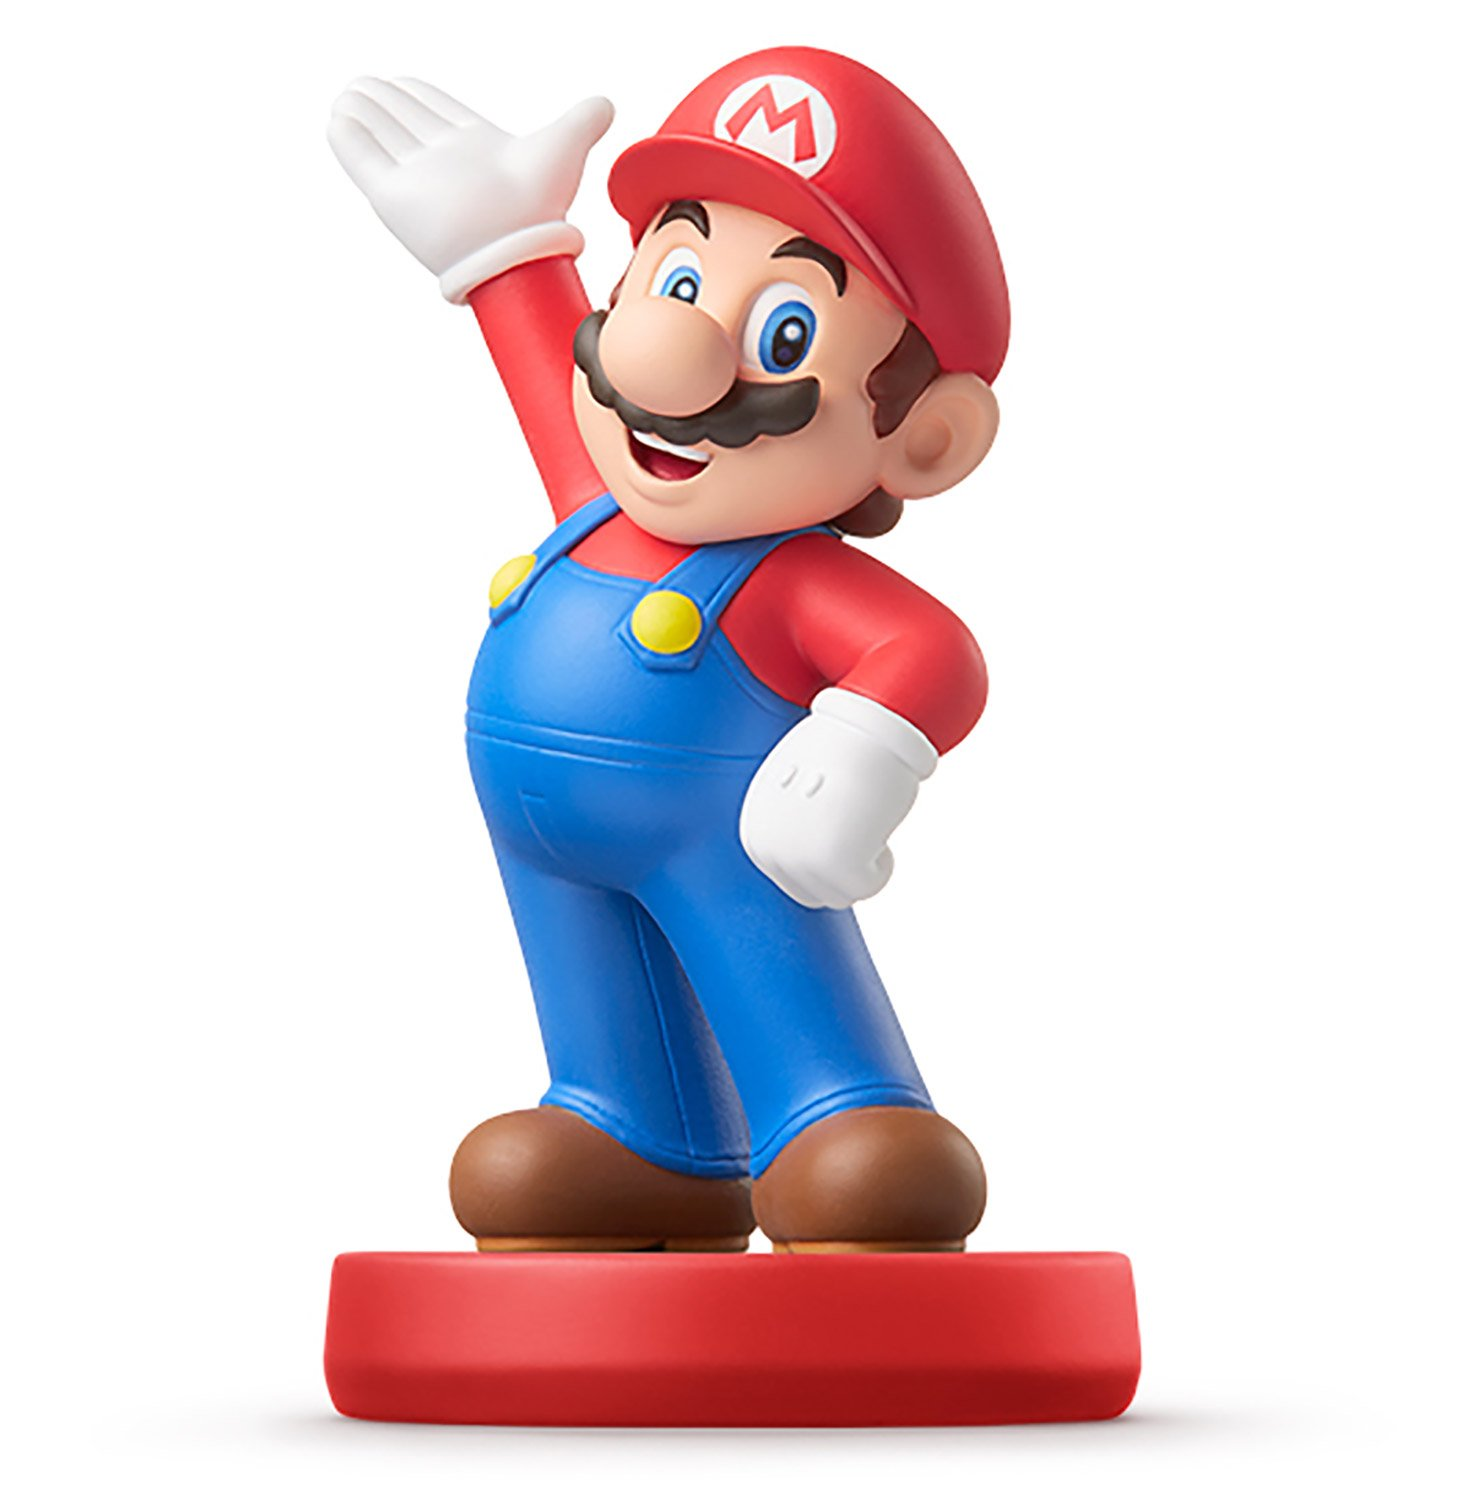 Mario amiibo - Japan Import (Super Mario Bros Series)